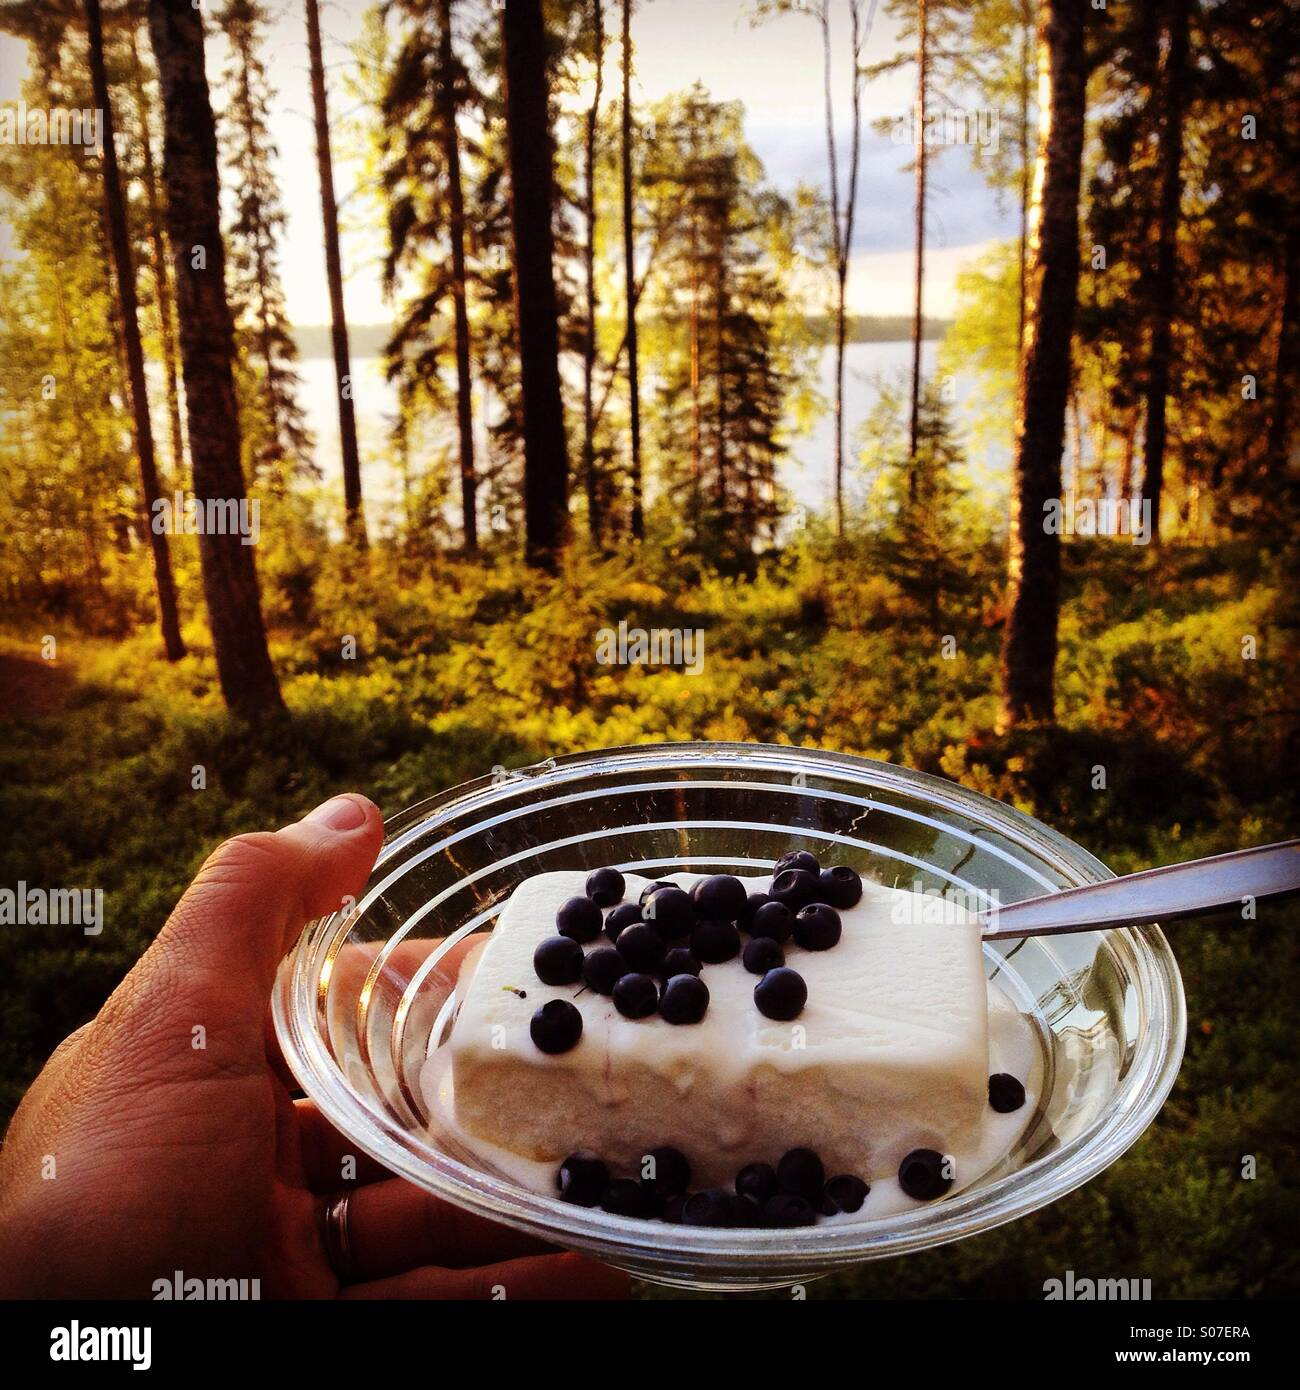 Freshly collected blueberries from a Nordic lake summerhouse forest added to an evening ice-cream on holiday - Stock Image